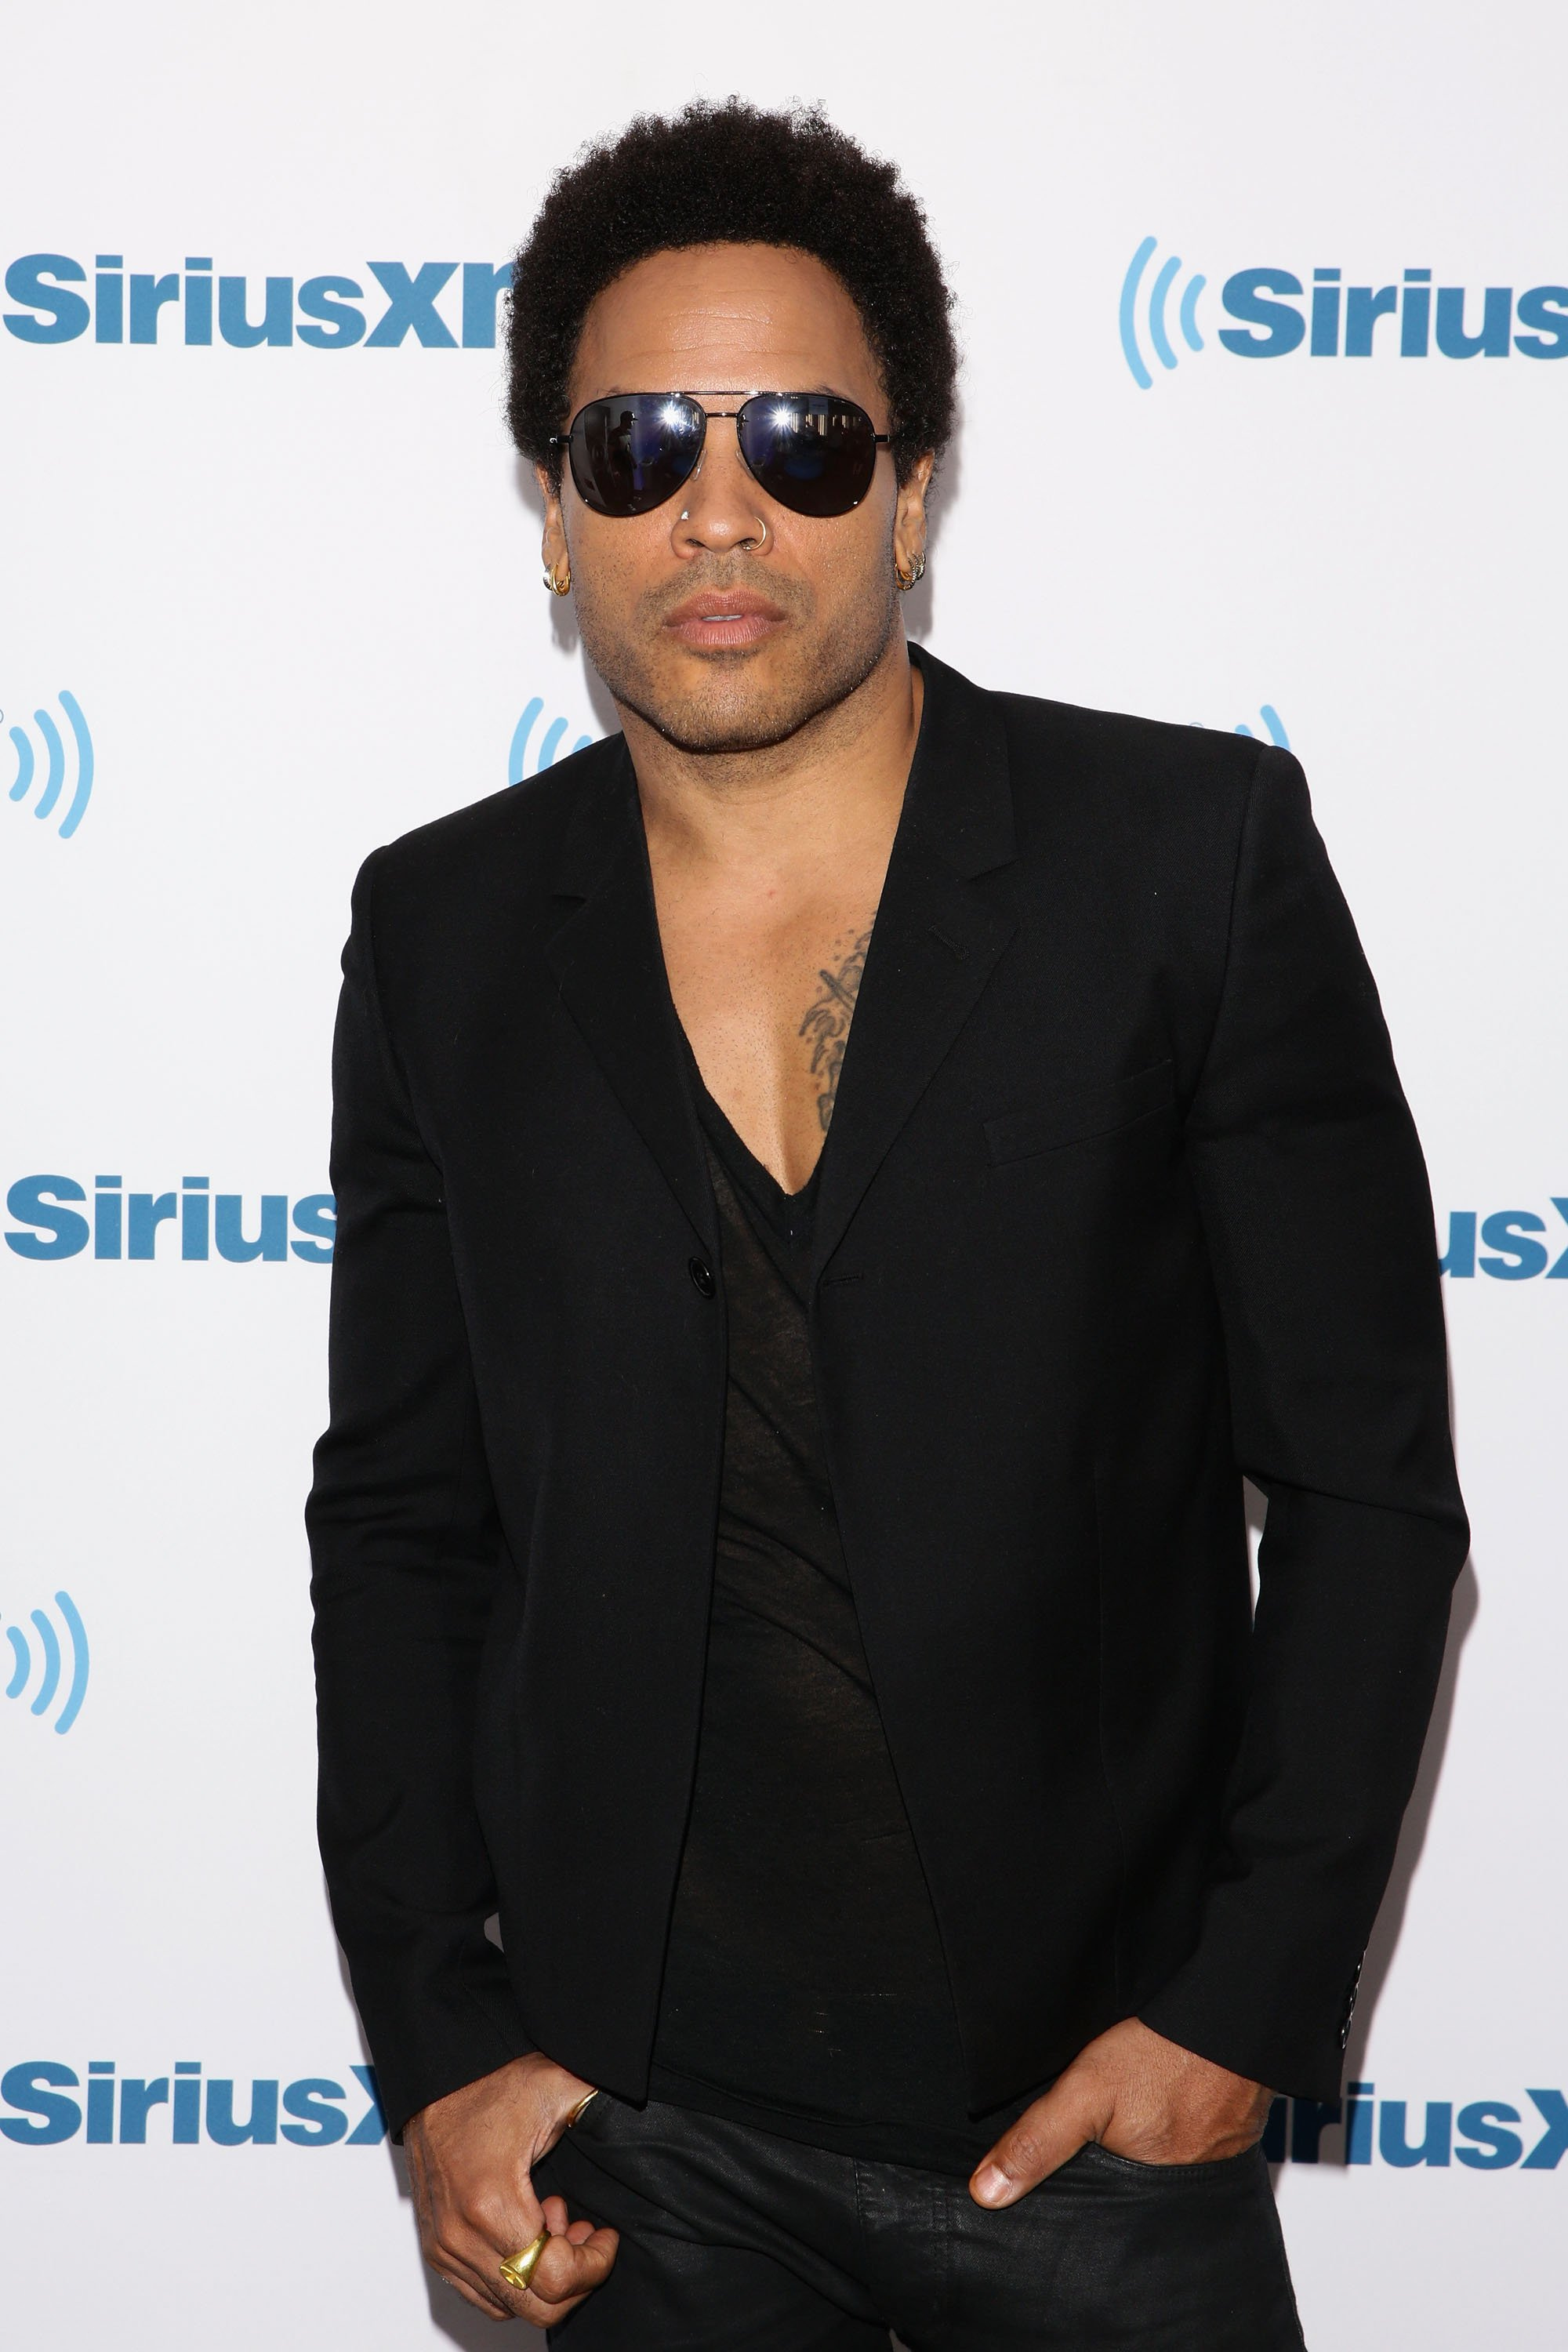 Lenny Kravitz lors de sa visite en 2014 aux studios SiriusXM de New York. | Photo: Getty Images